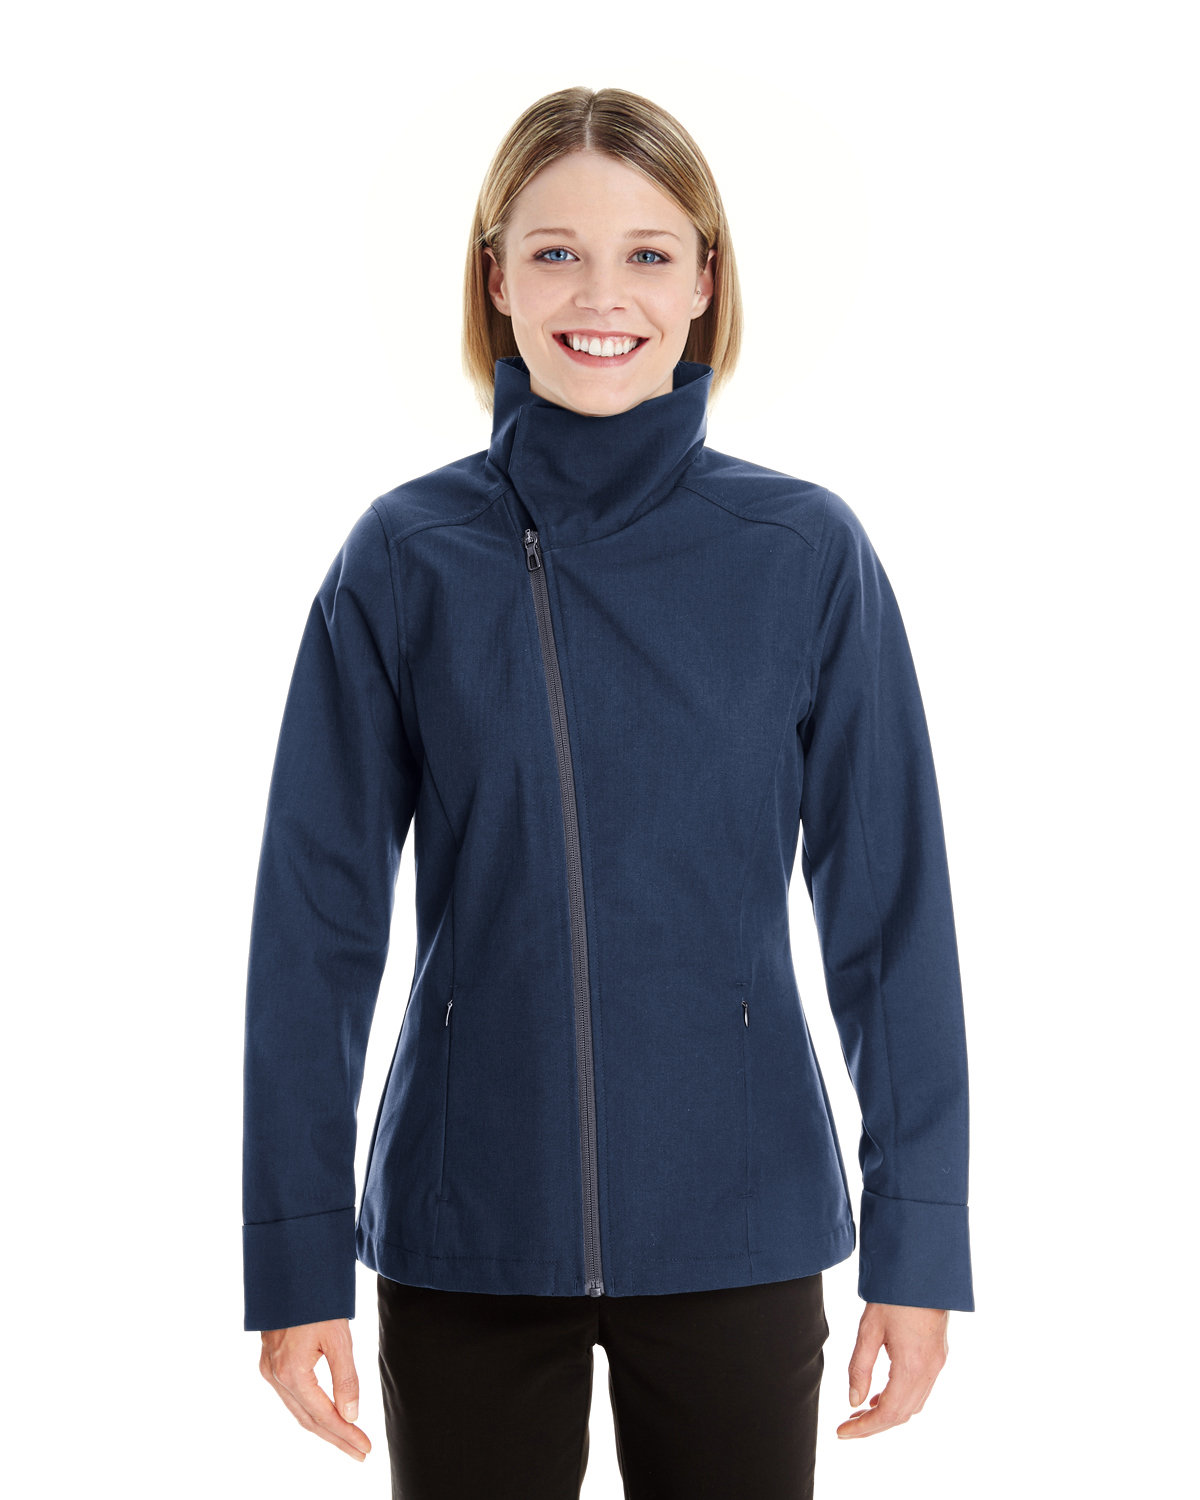 North End Ladies' Edge Soft Shell Jacket with Convertible Collar NAVY